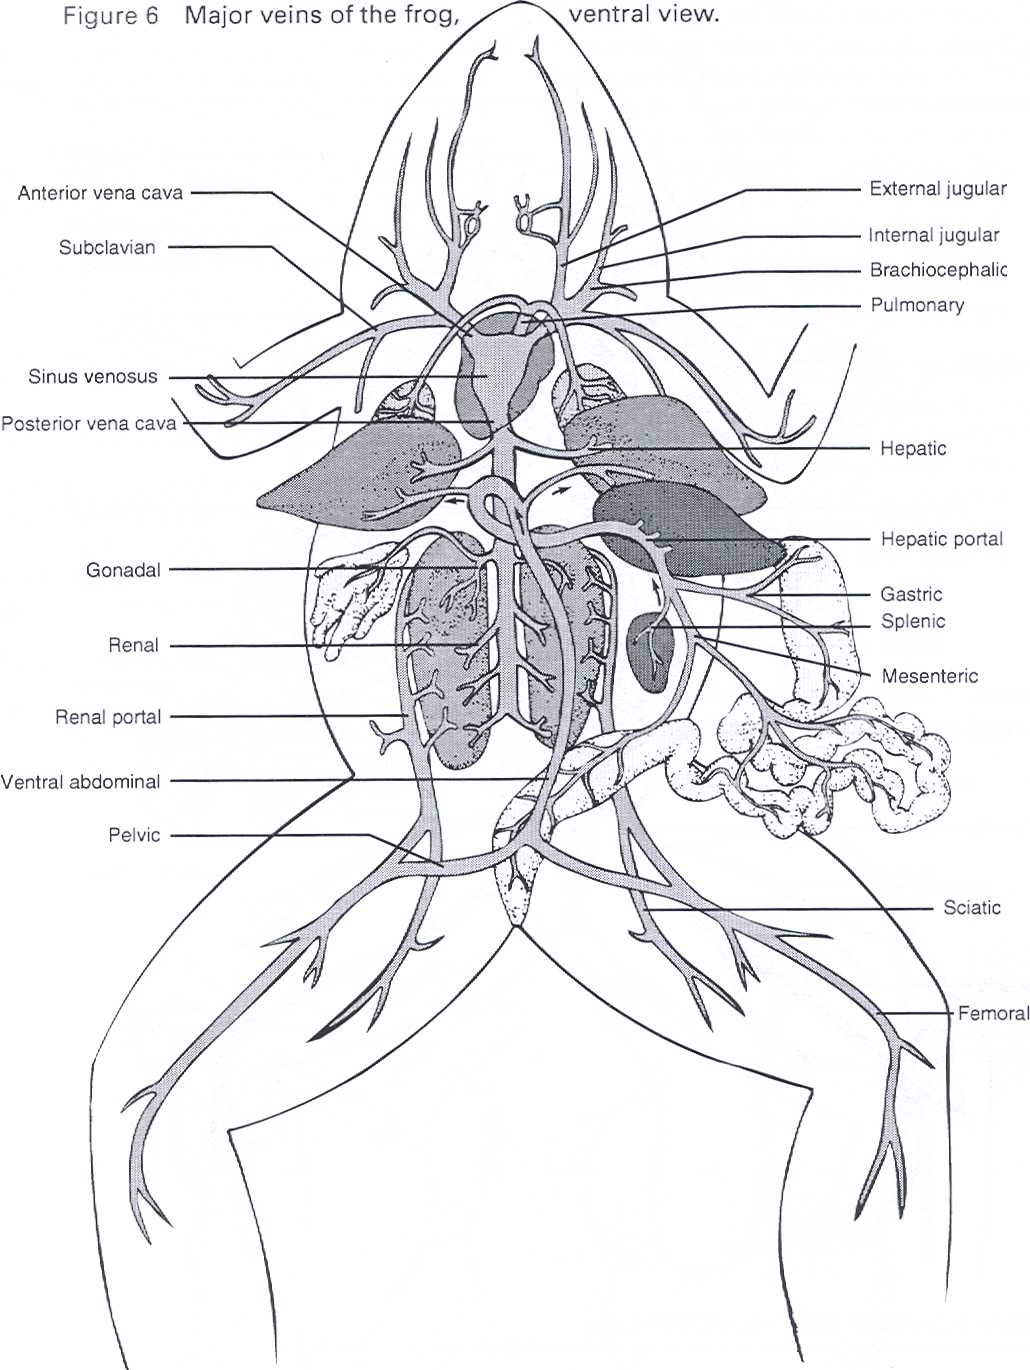 frog internal anatomy diagram labeled wiring for blower motor resistor dissection of the